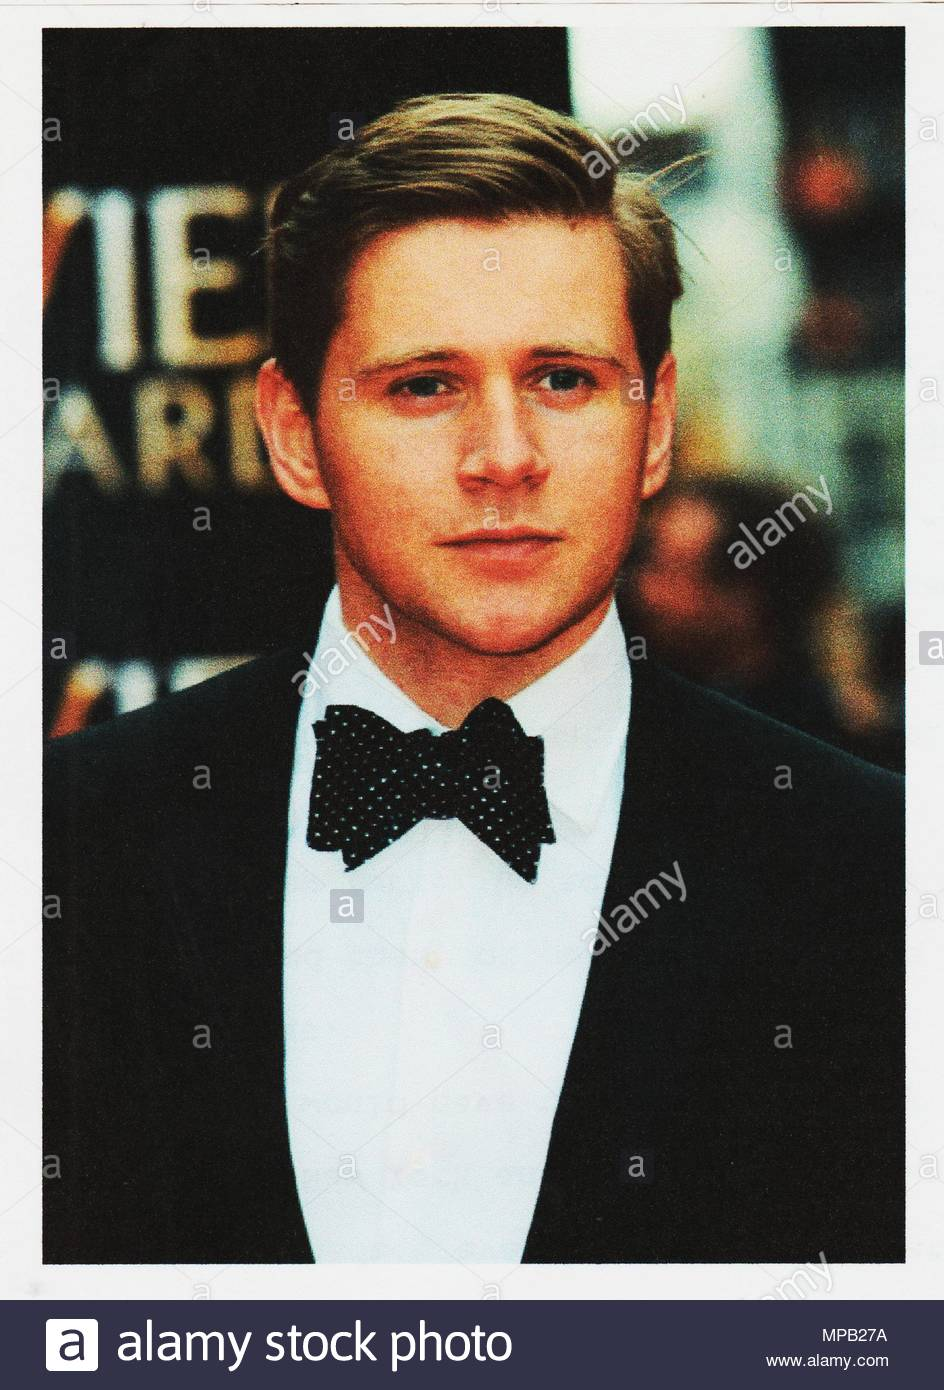 Watch Allen Leech (born 1981) video